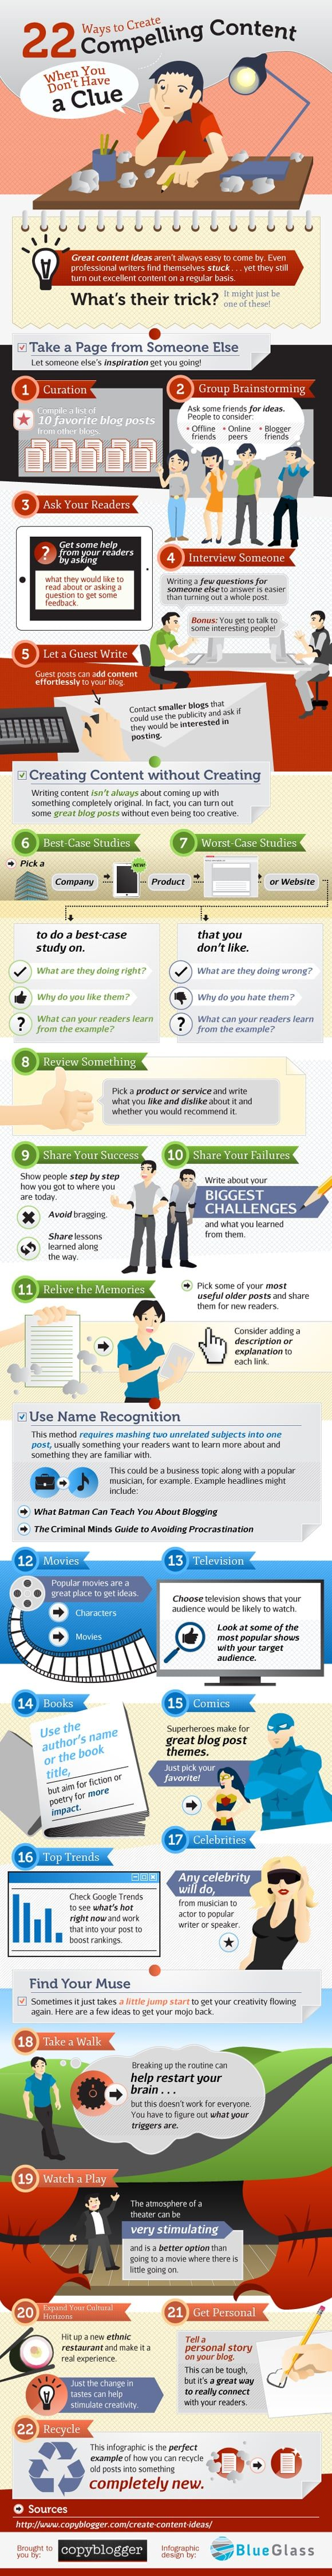 Best Infographics Images On Pinterest Infographic Infographics - Pages invoice templates free kaws online store